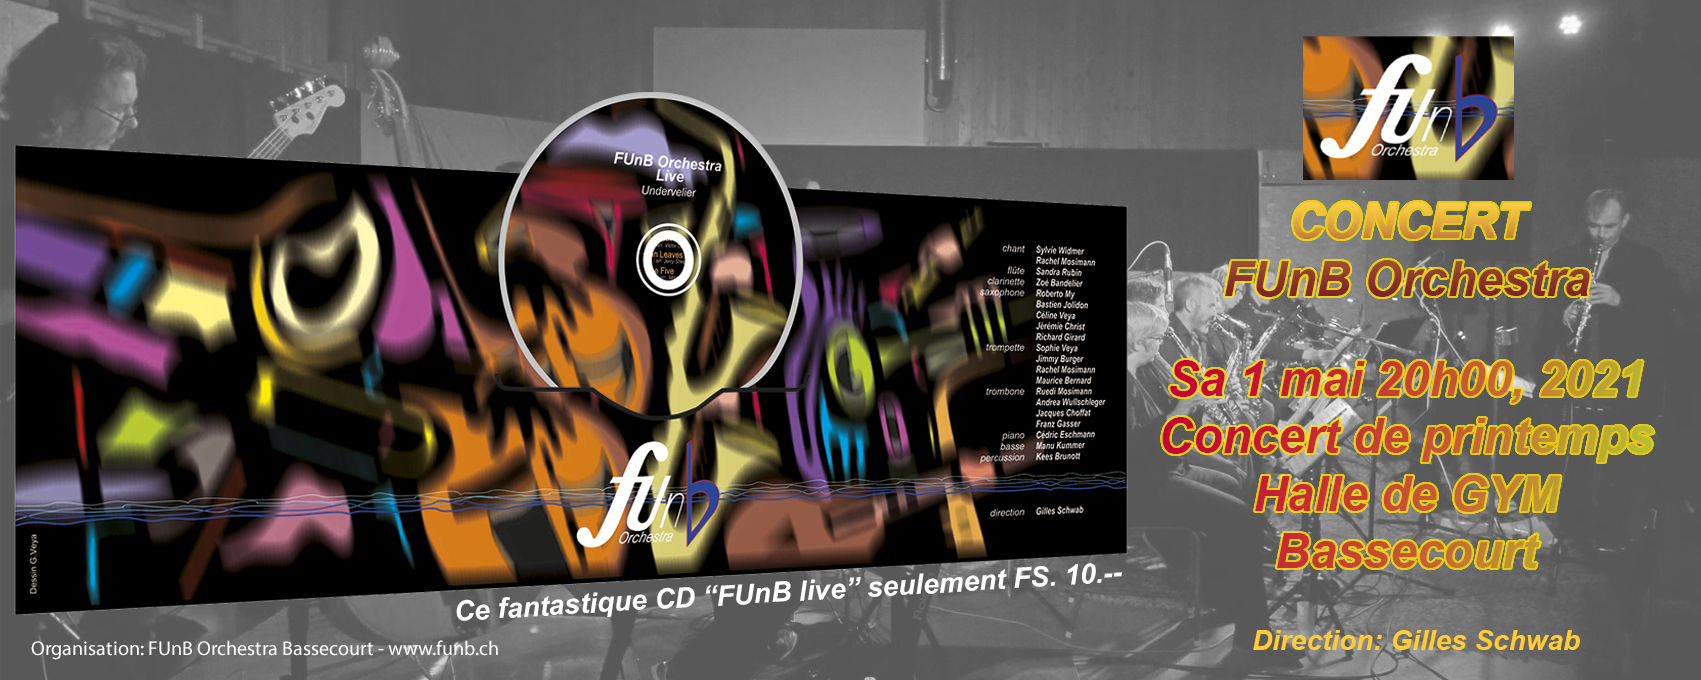 FUnB front page 2021 CB+CD2